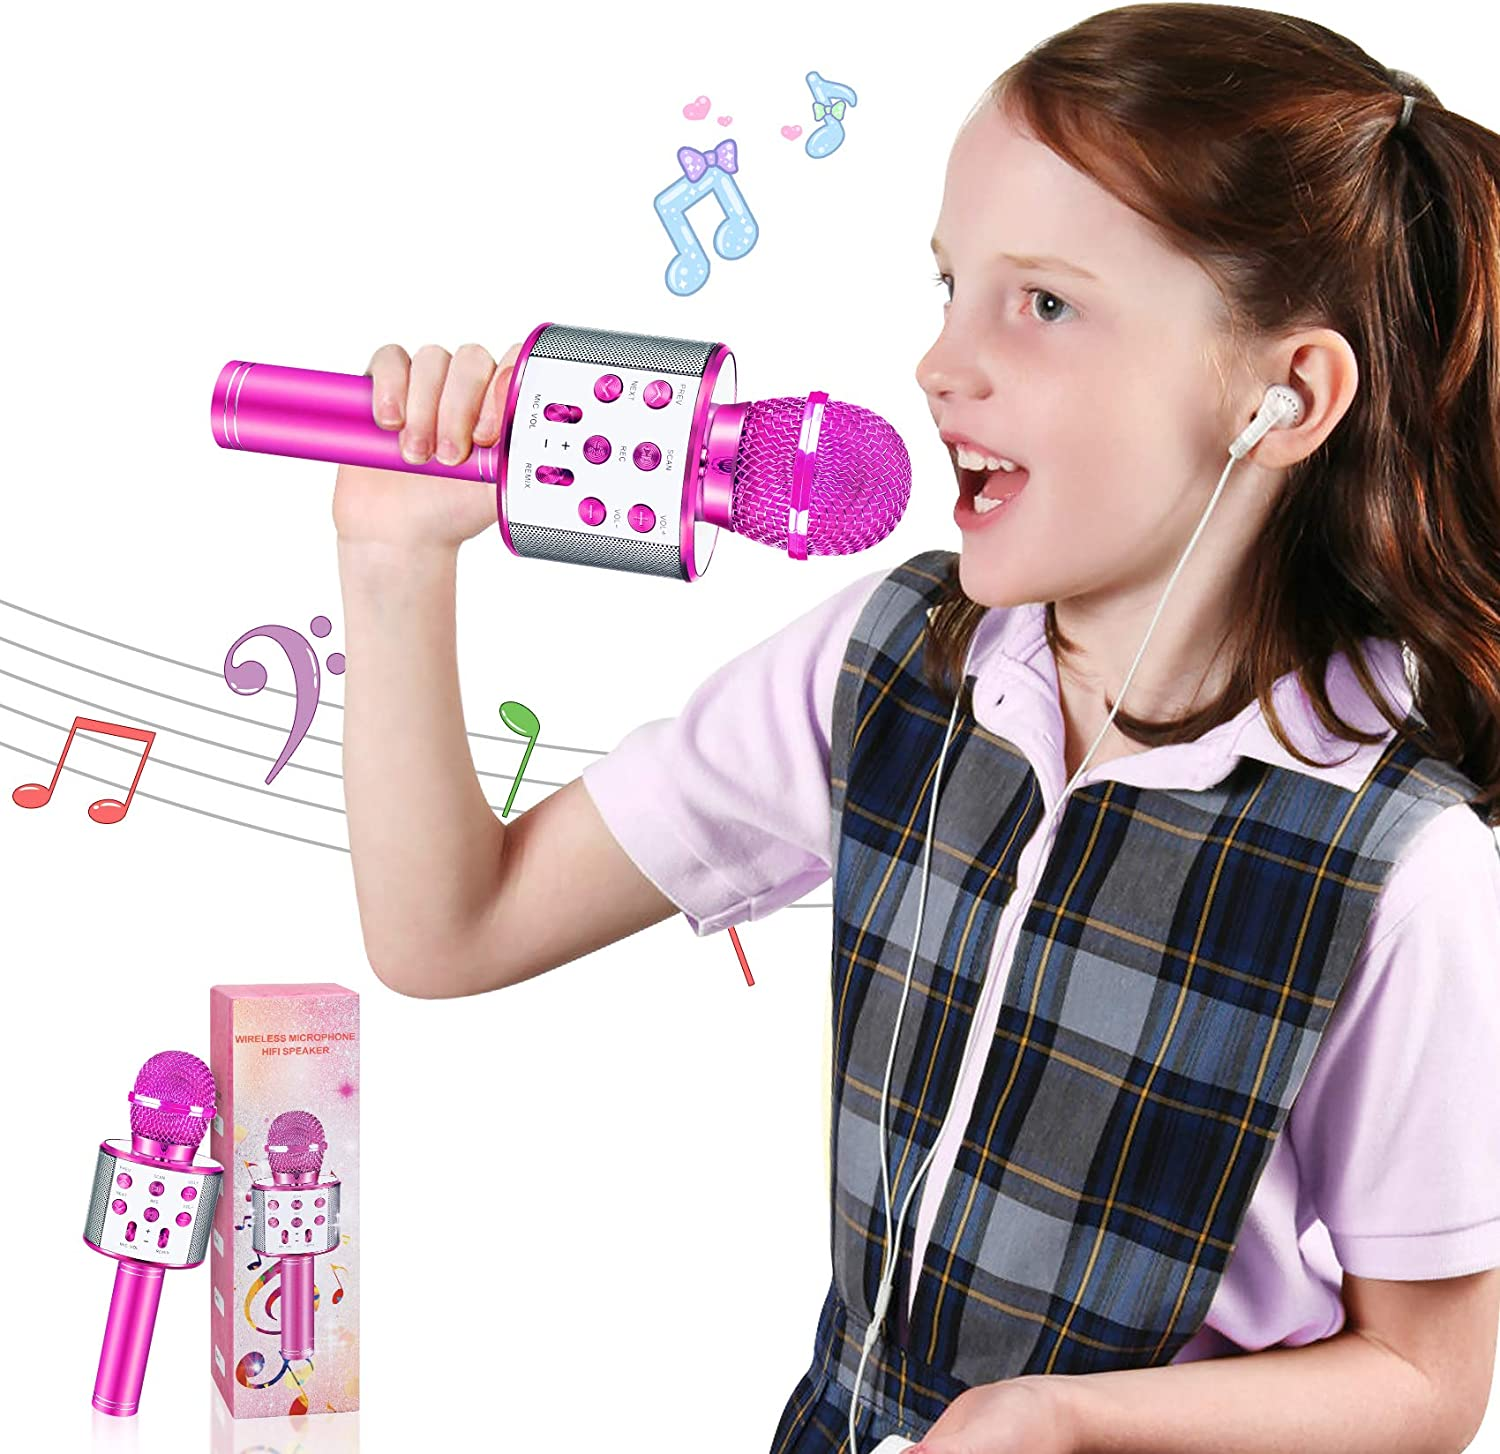 HahaGift New arrival Toys for 3-16 Years Clearance SALE! Limited time! Gifts Girls Old Wireless Microphon